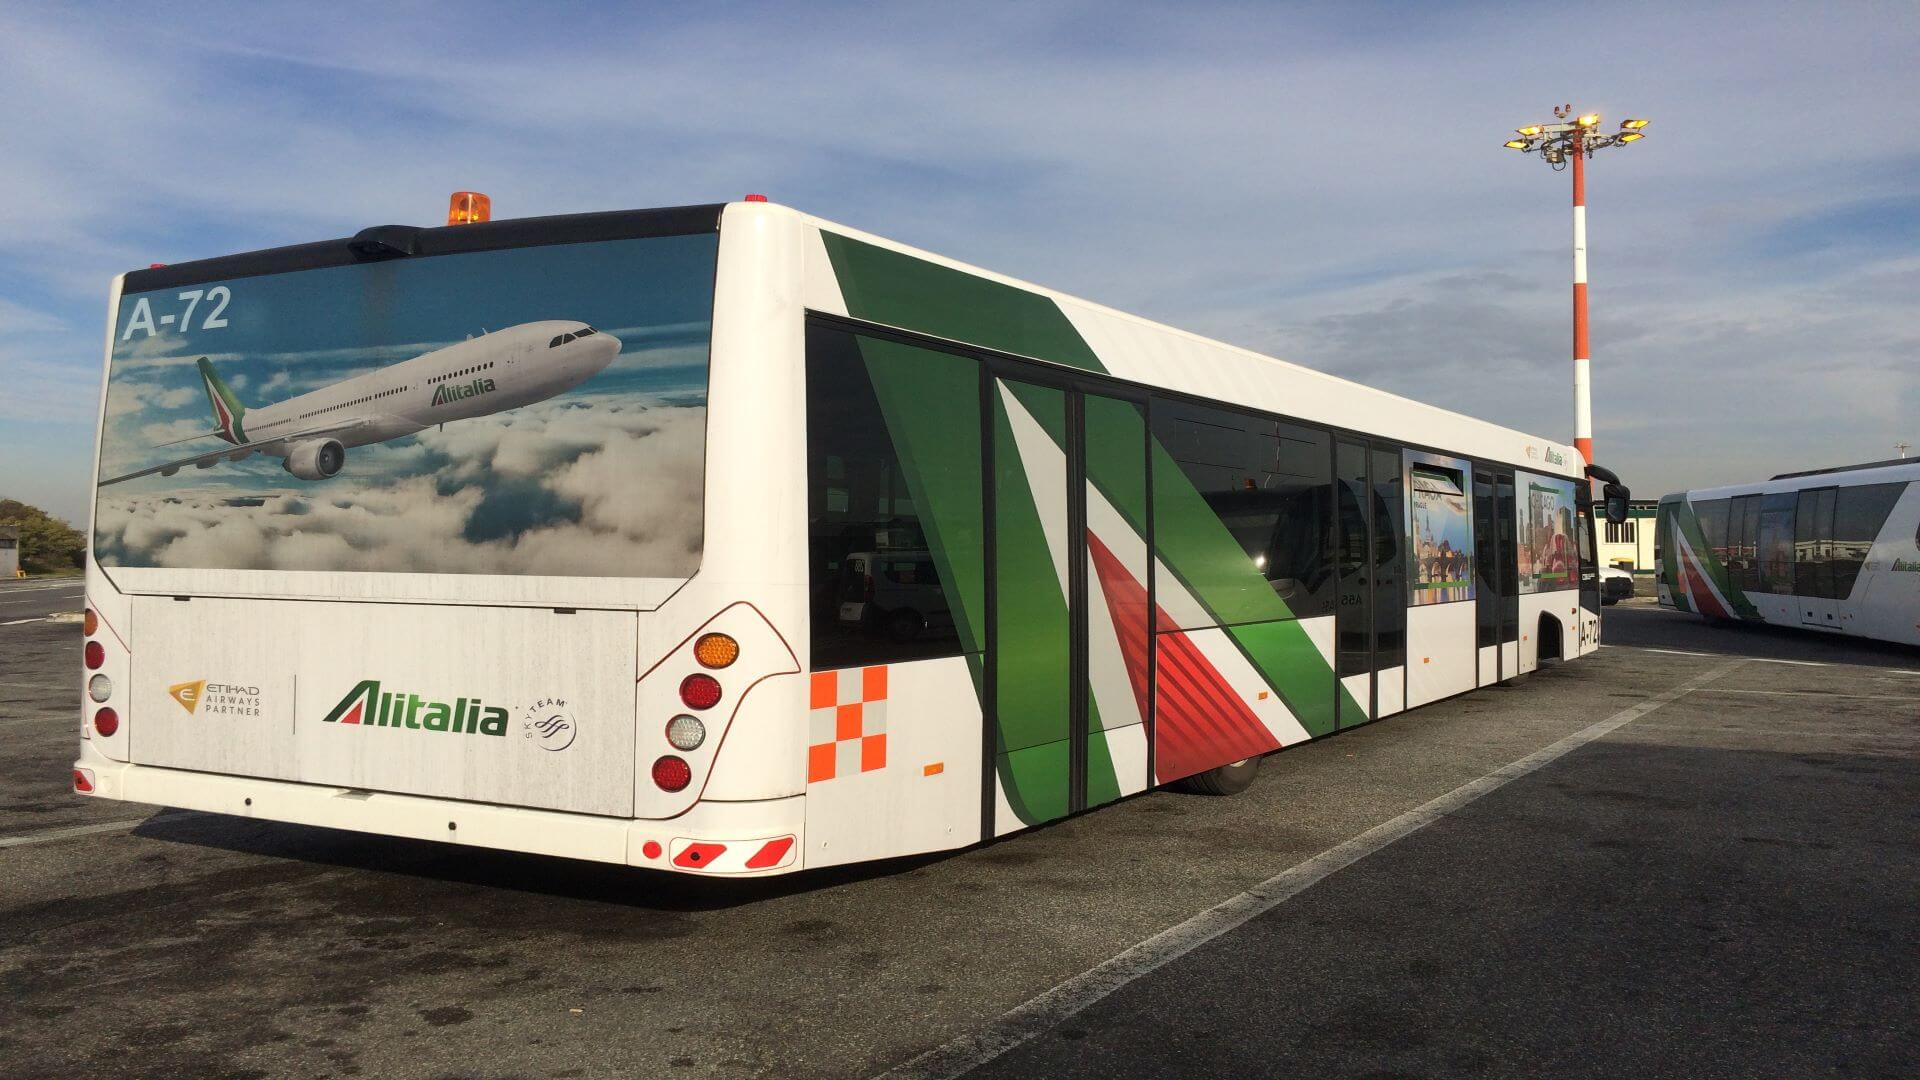 Alitalia rebrand implementation